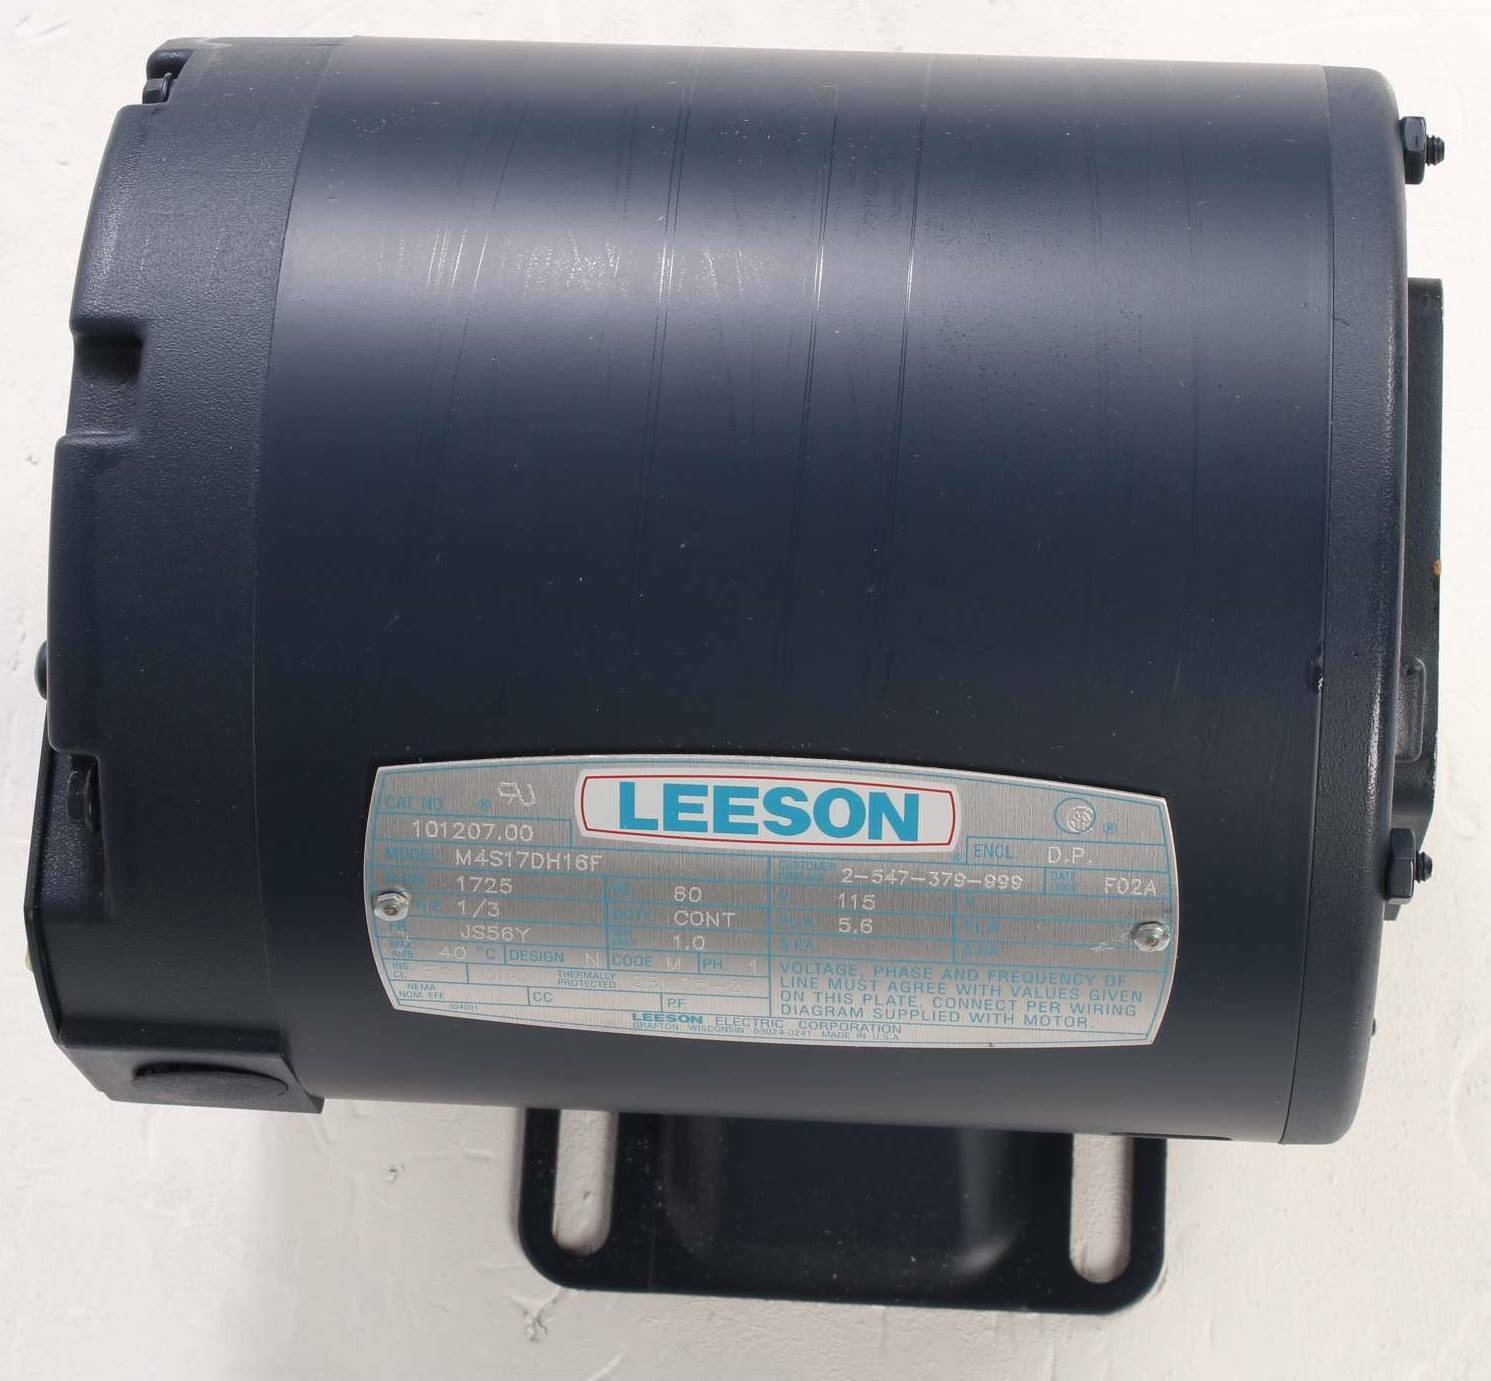 M4s17dh16f leeson 13hp electric motor 1725rpm cat 10120700 picture 1 of 8 cheapraybanclubmaster Choice Image